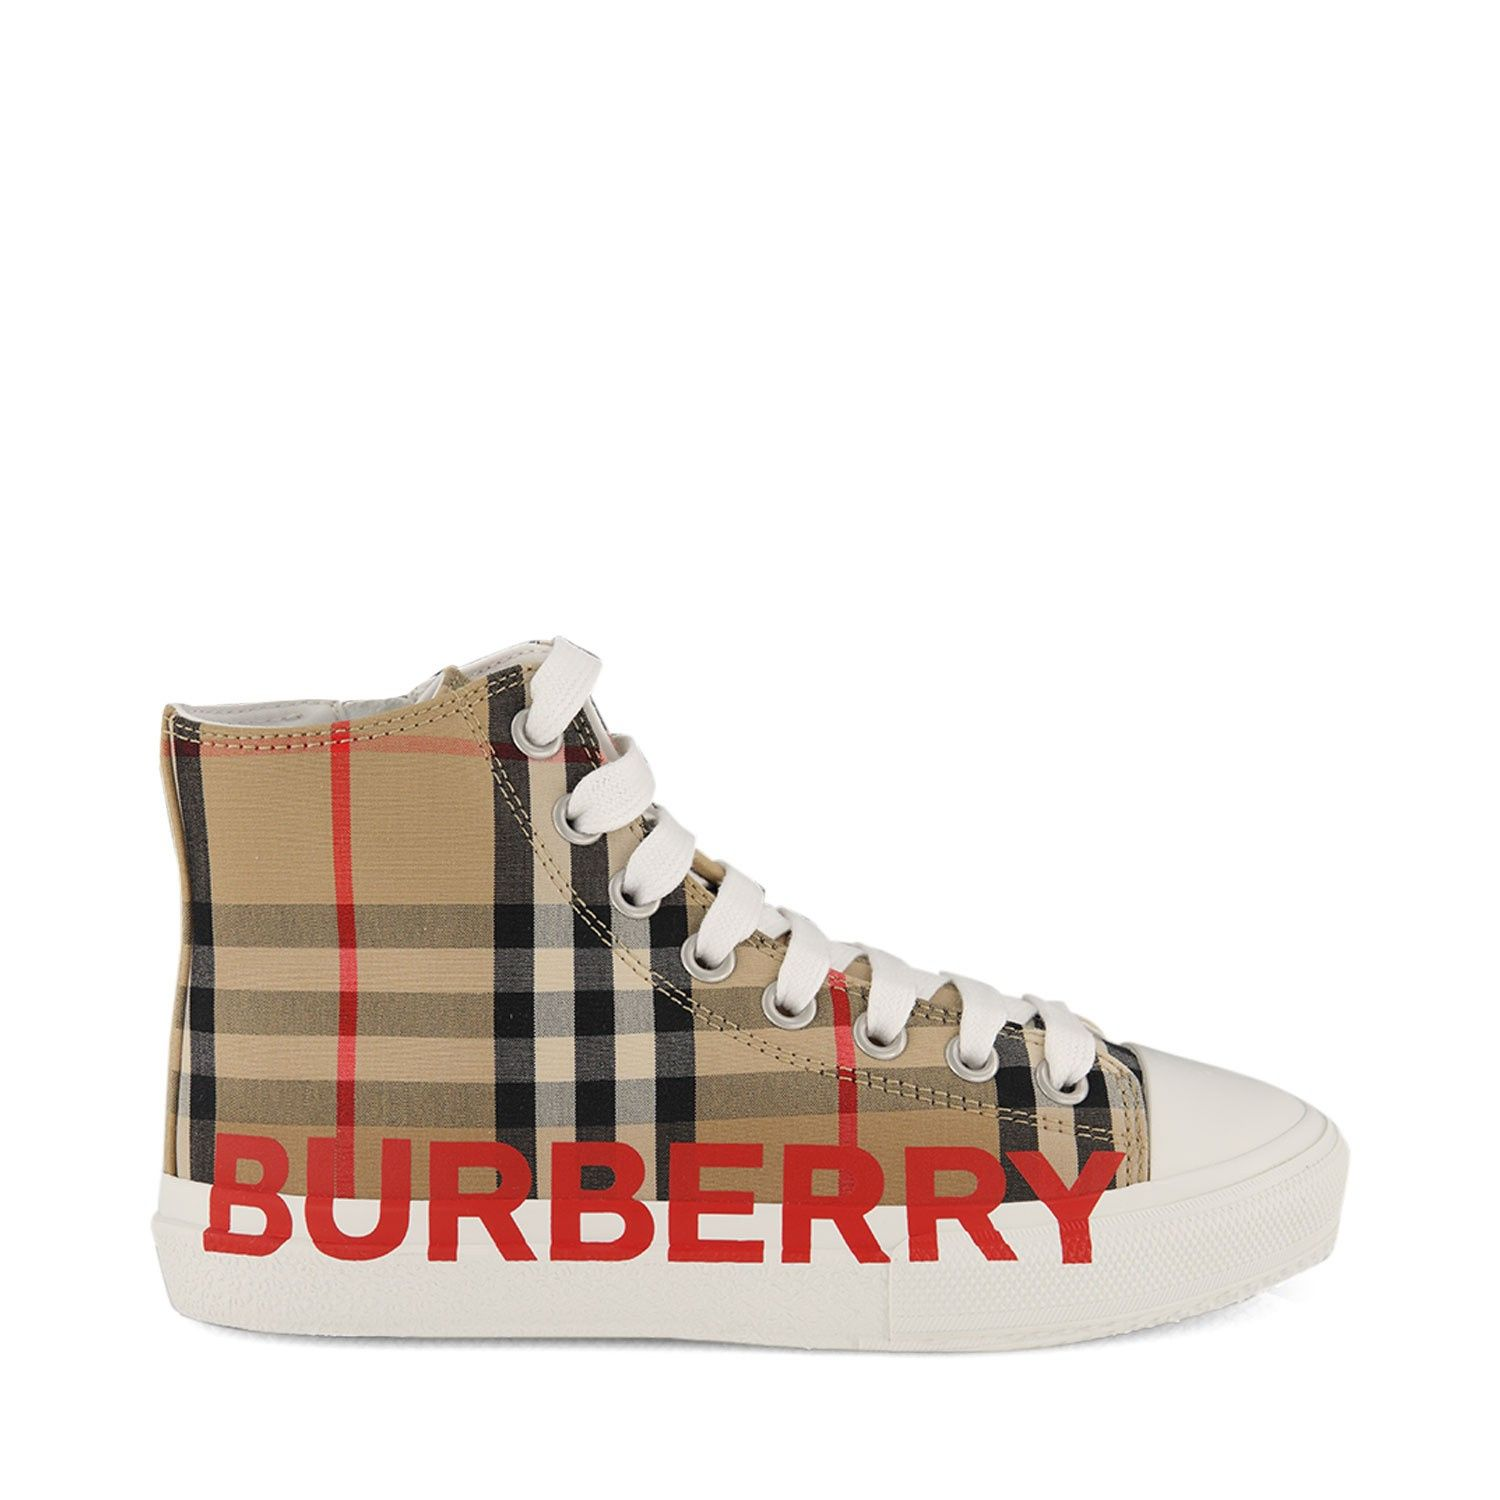 Picture of Burberry 8027071 kids sneakers beige